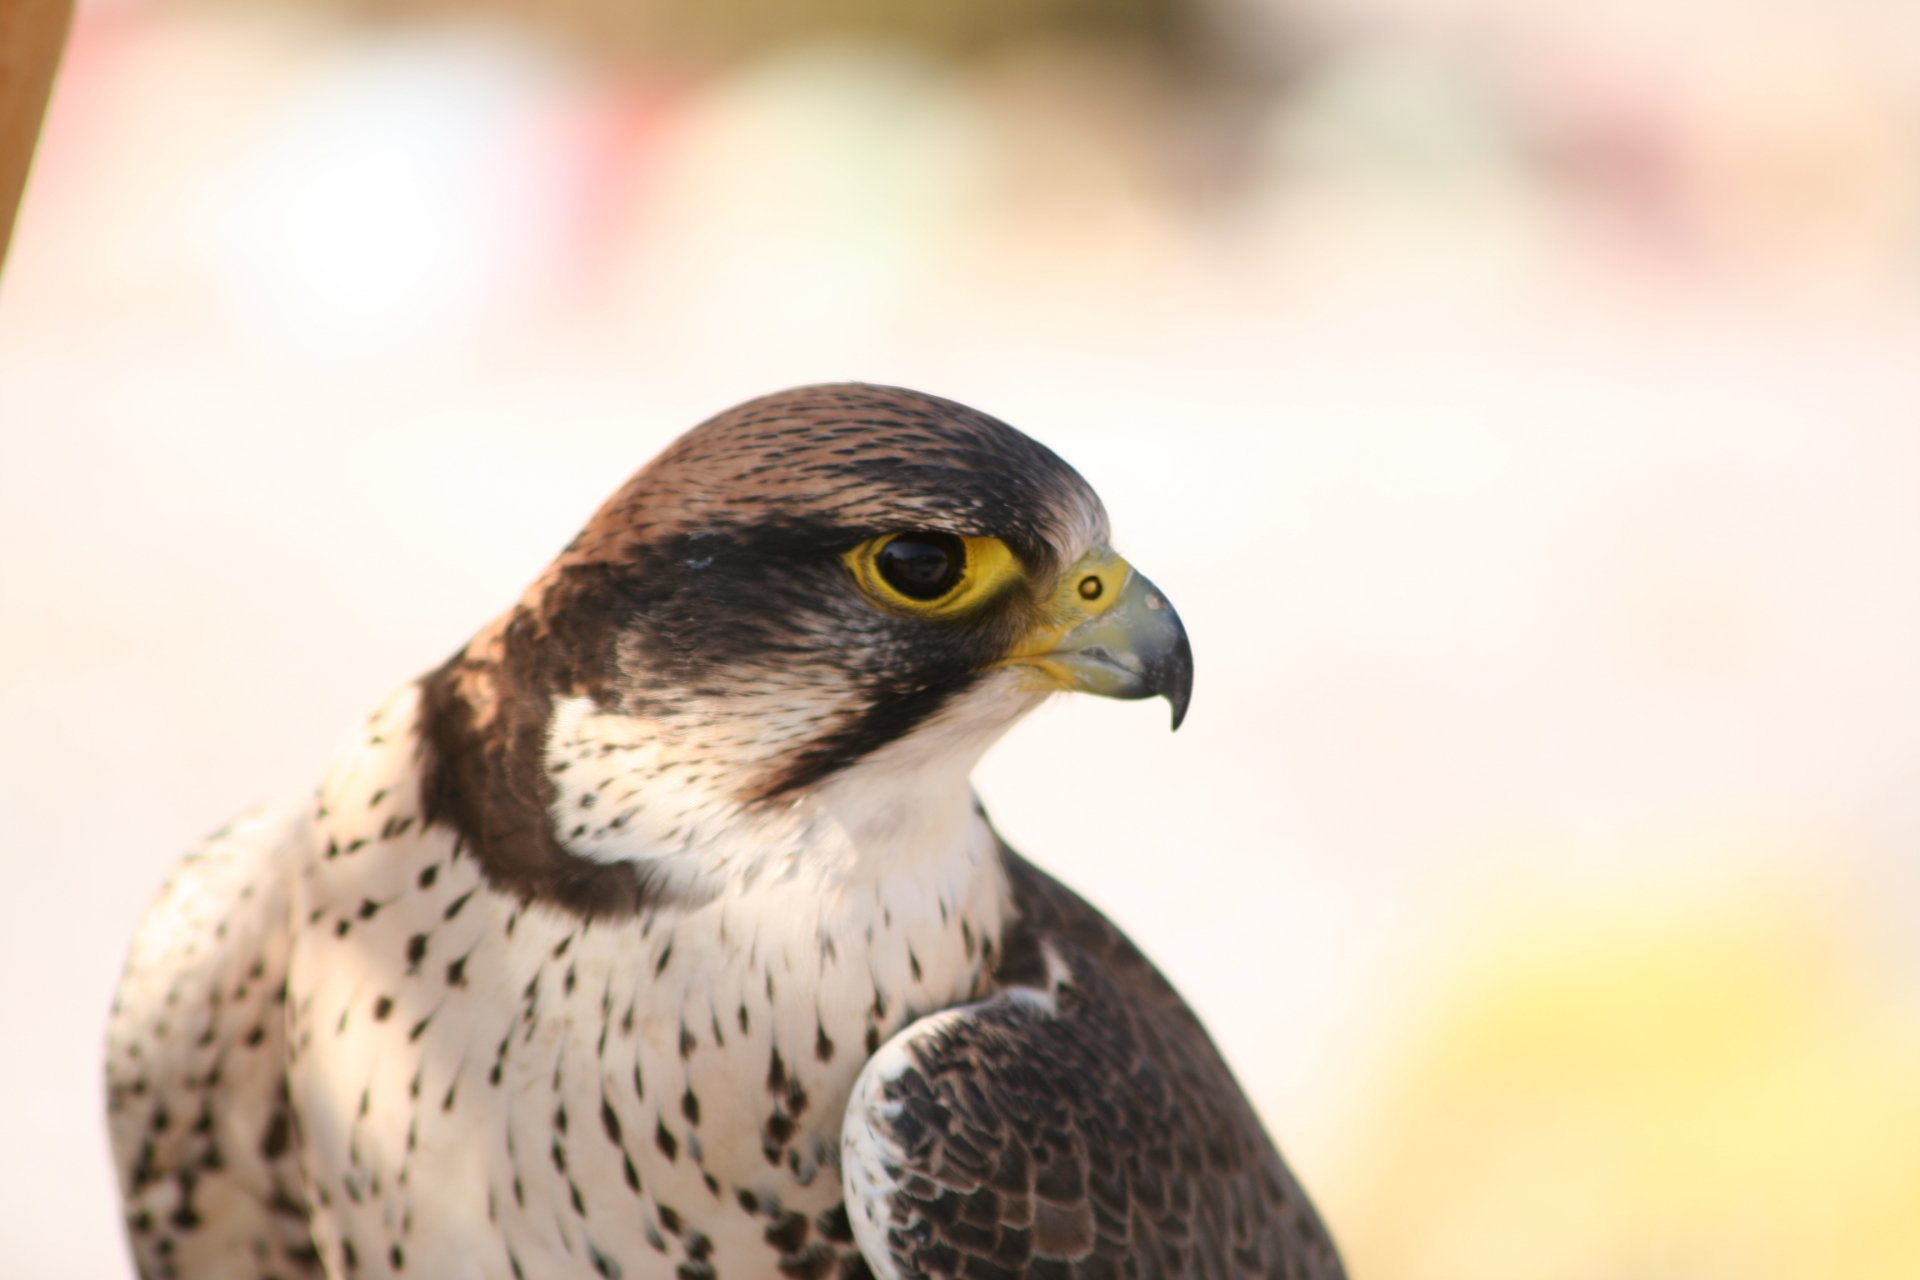 Peregrine falcon hd wallpaper background image - Birds of prey wallpaper hd ...